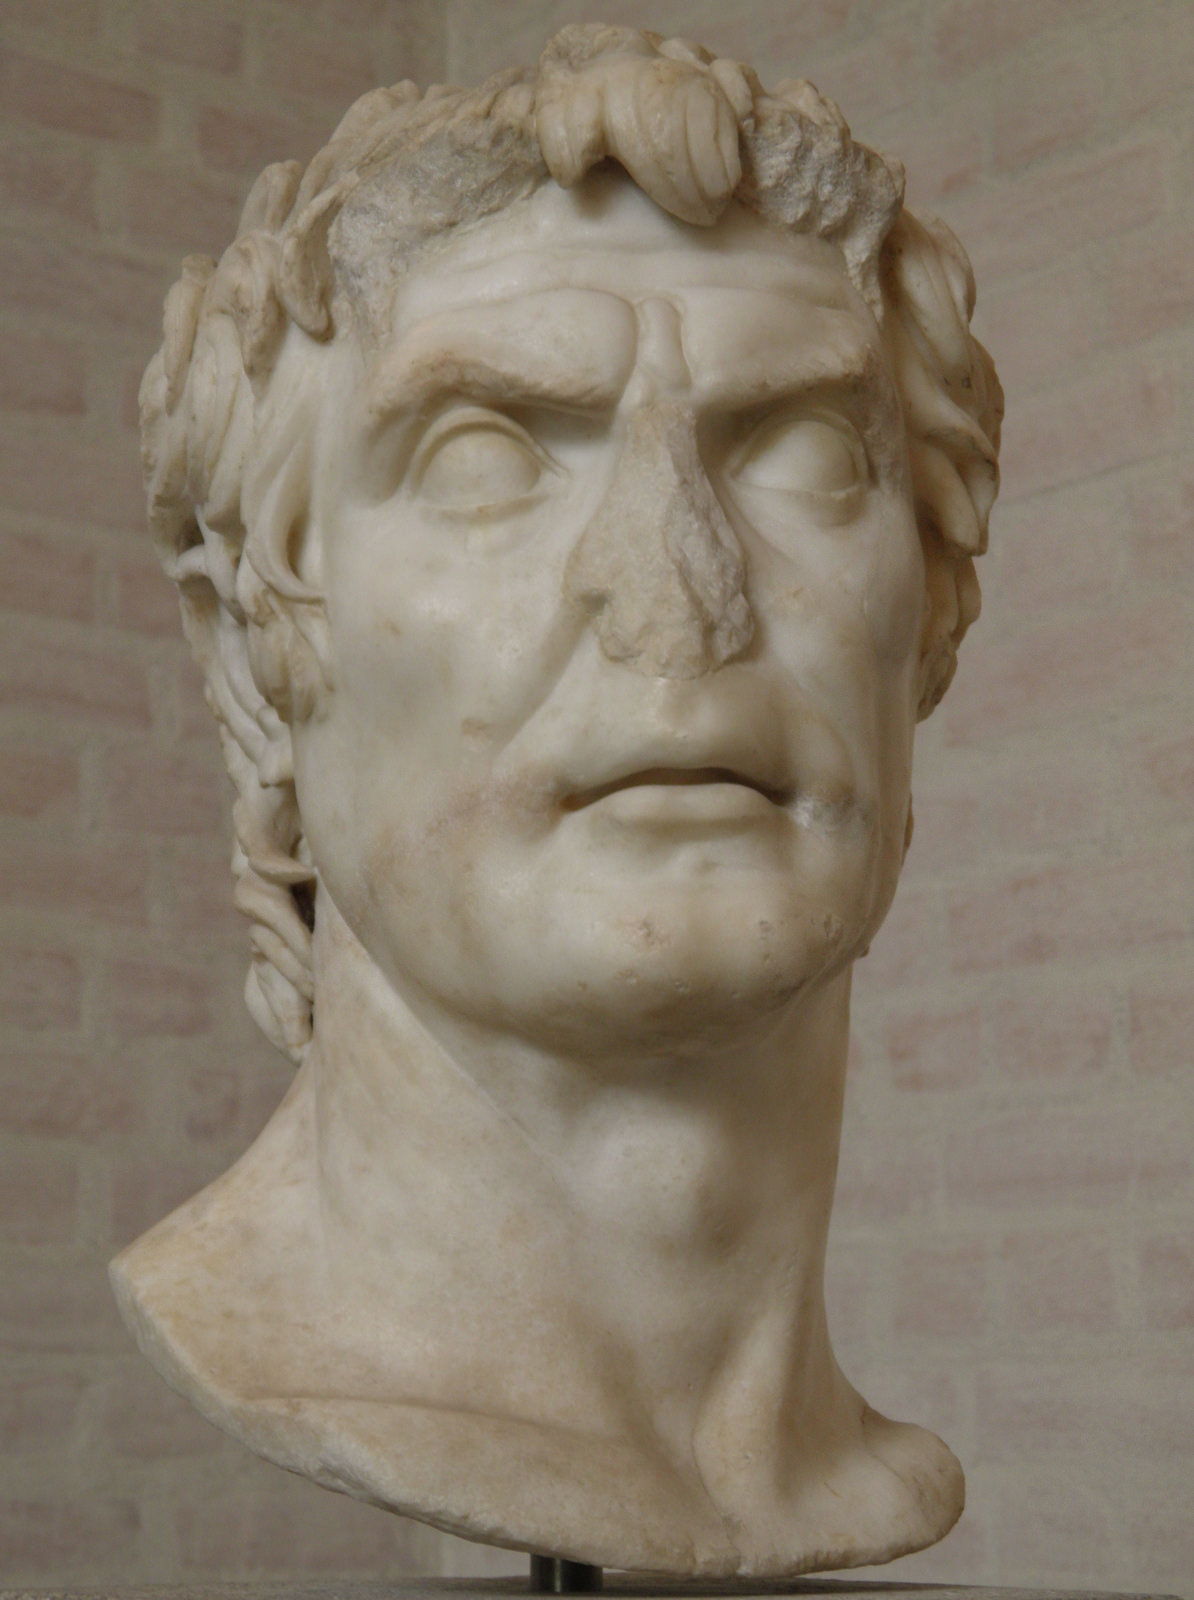 What contributions did the Romans make to the modern world?